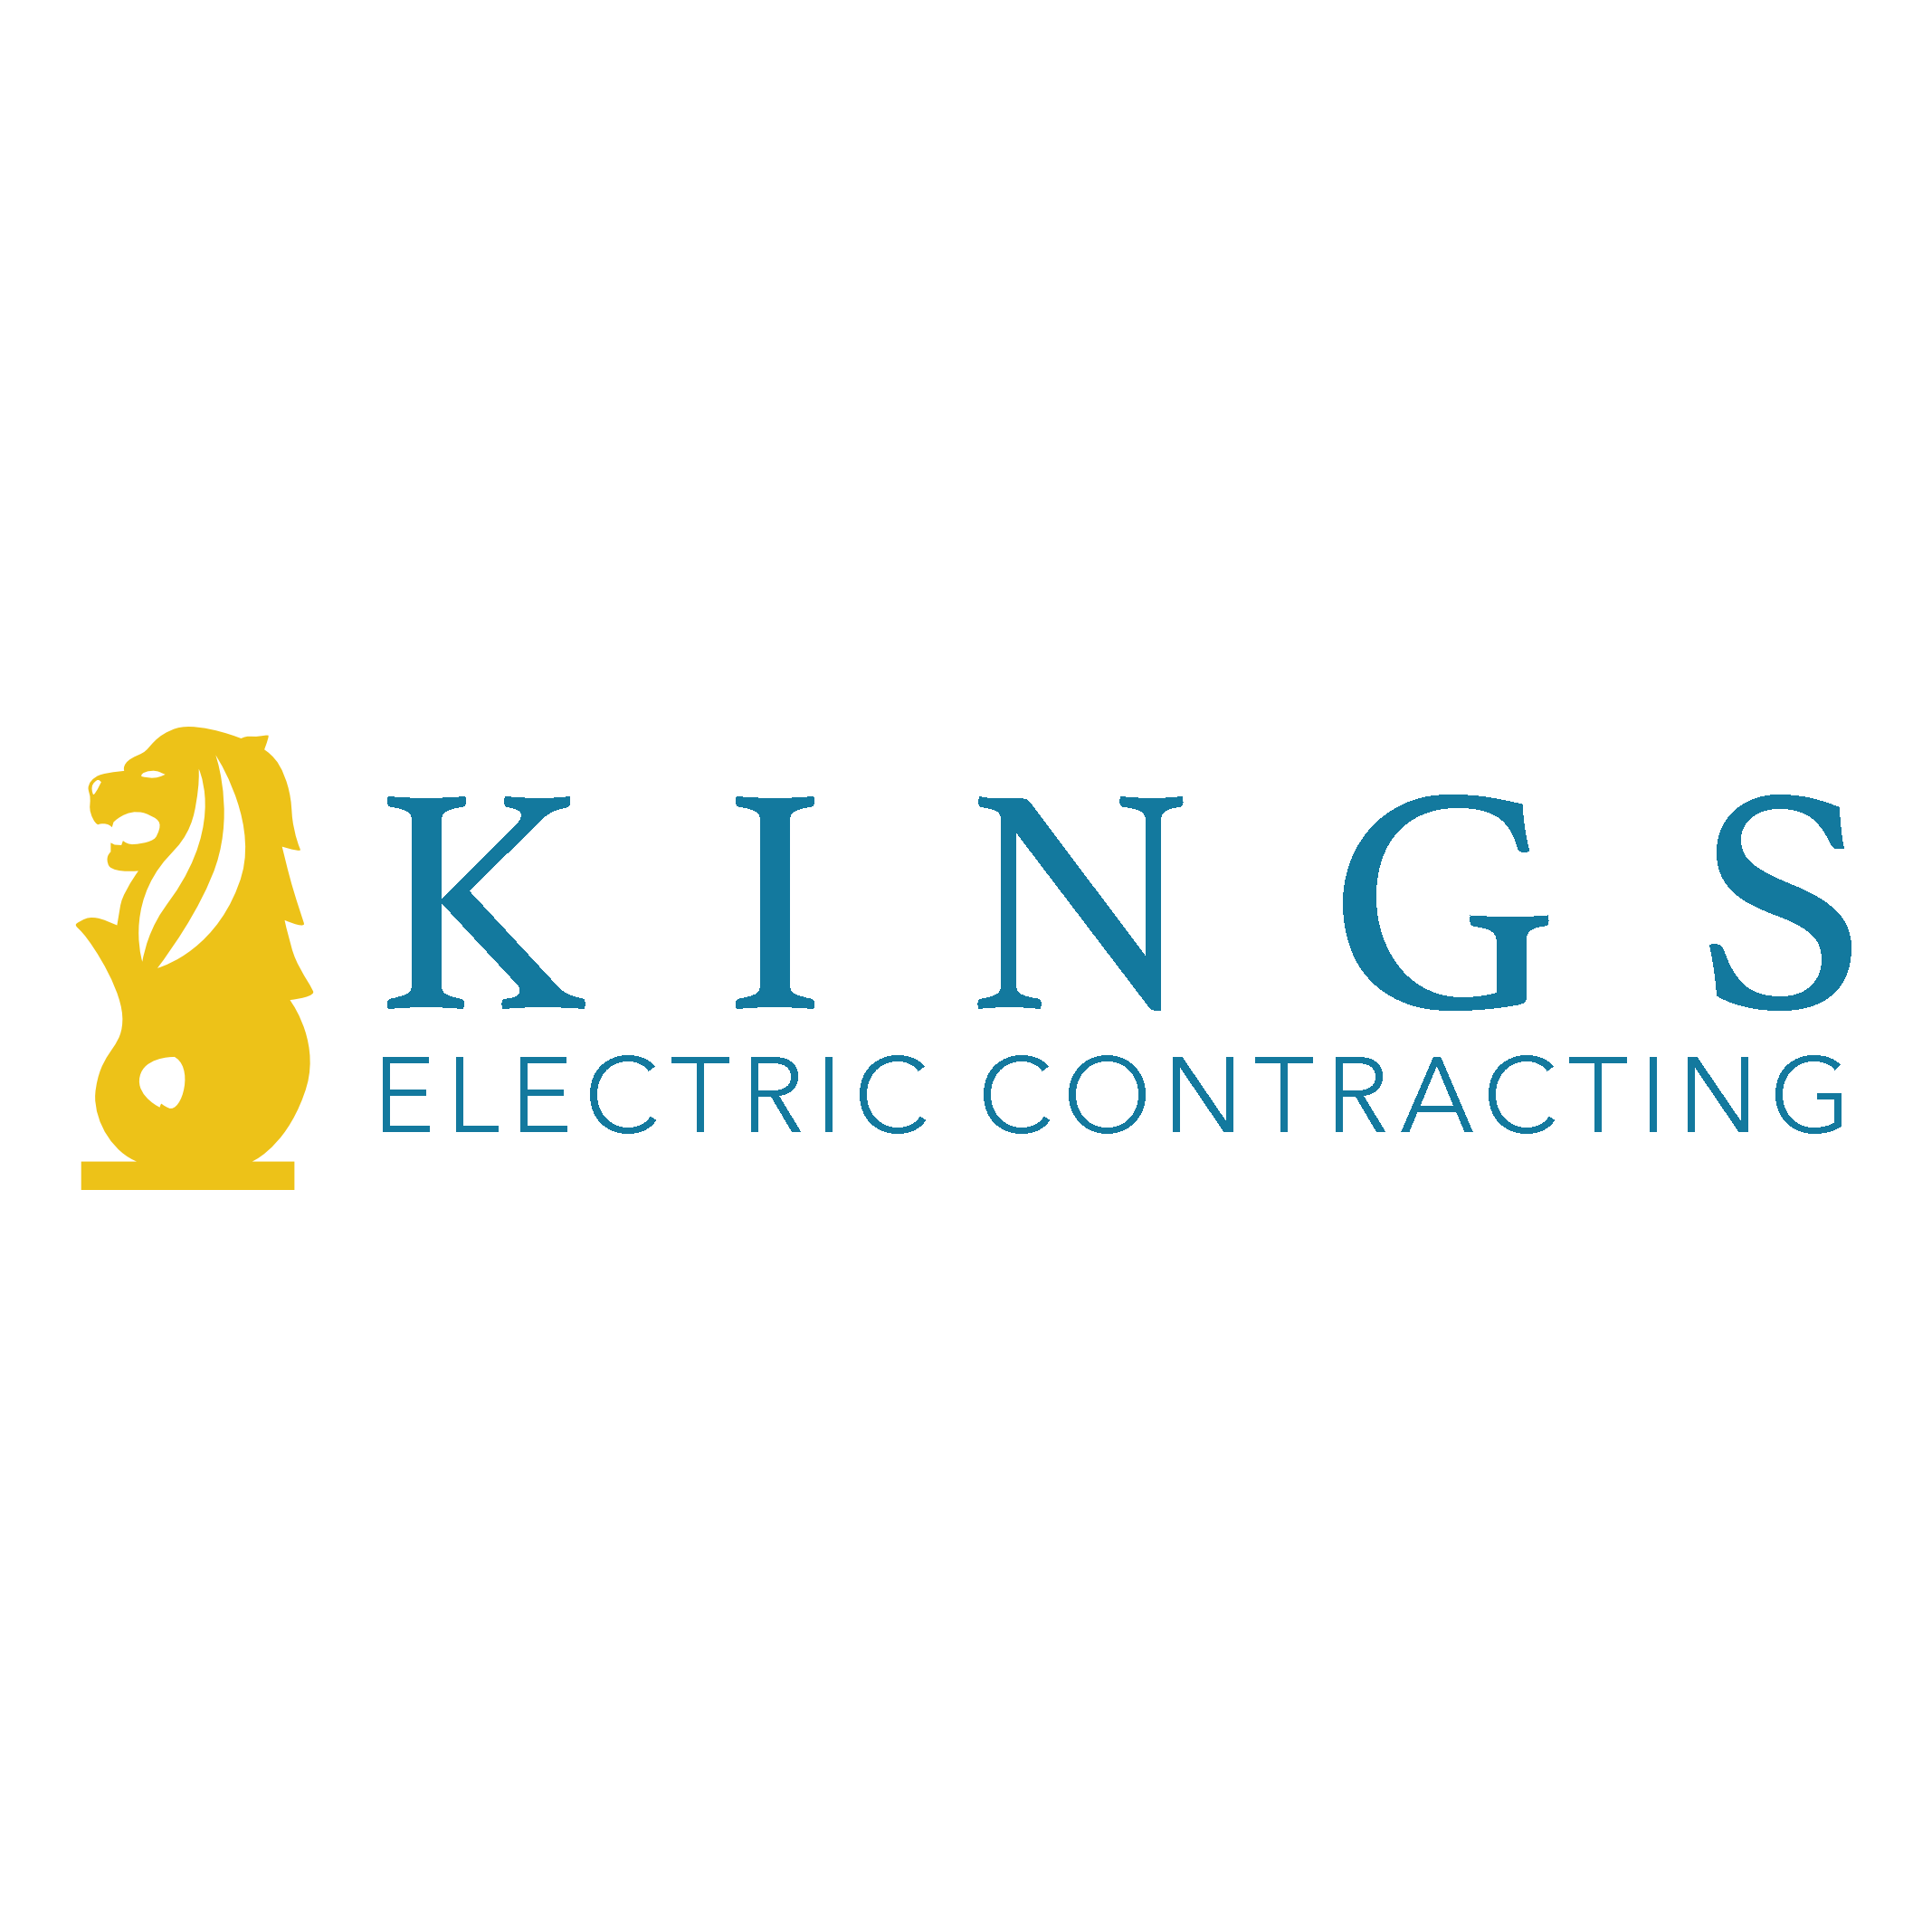 Kings Electric Contracting